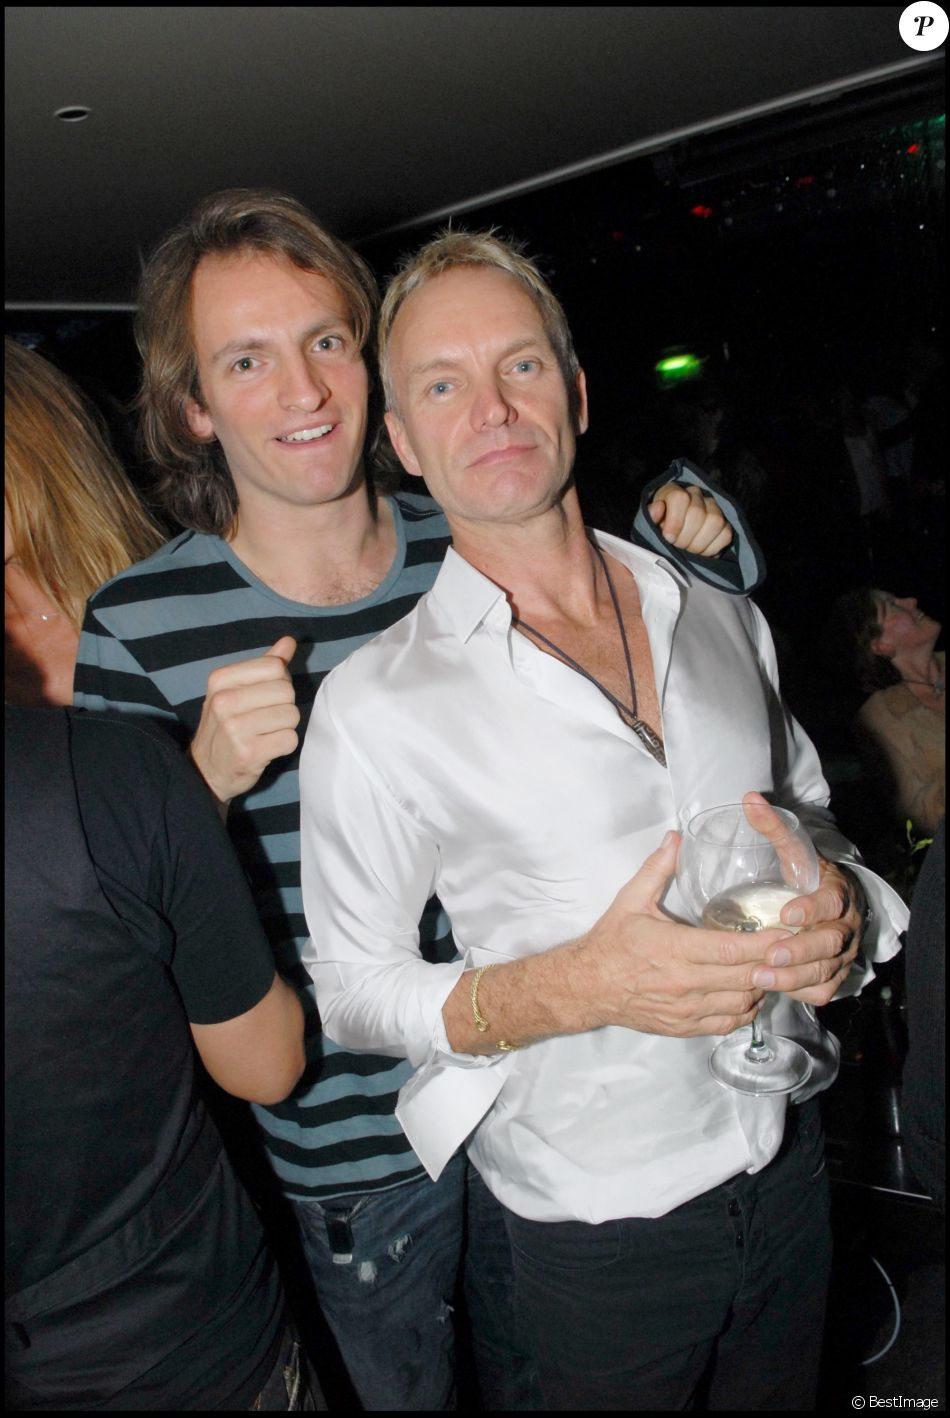 Exclusif - Le chanteur Sting et son fils Joe Sumner - After show du groupe Police au VIP Room le 29 septembre 2007.